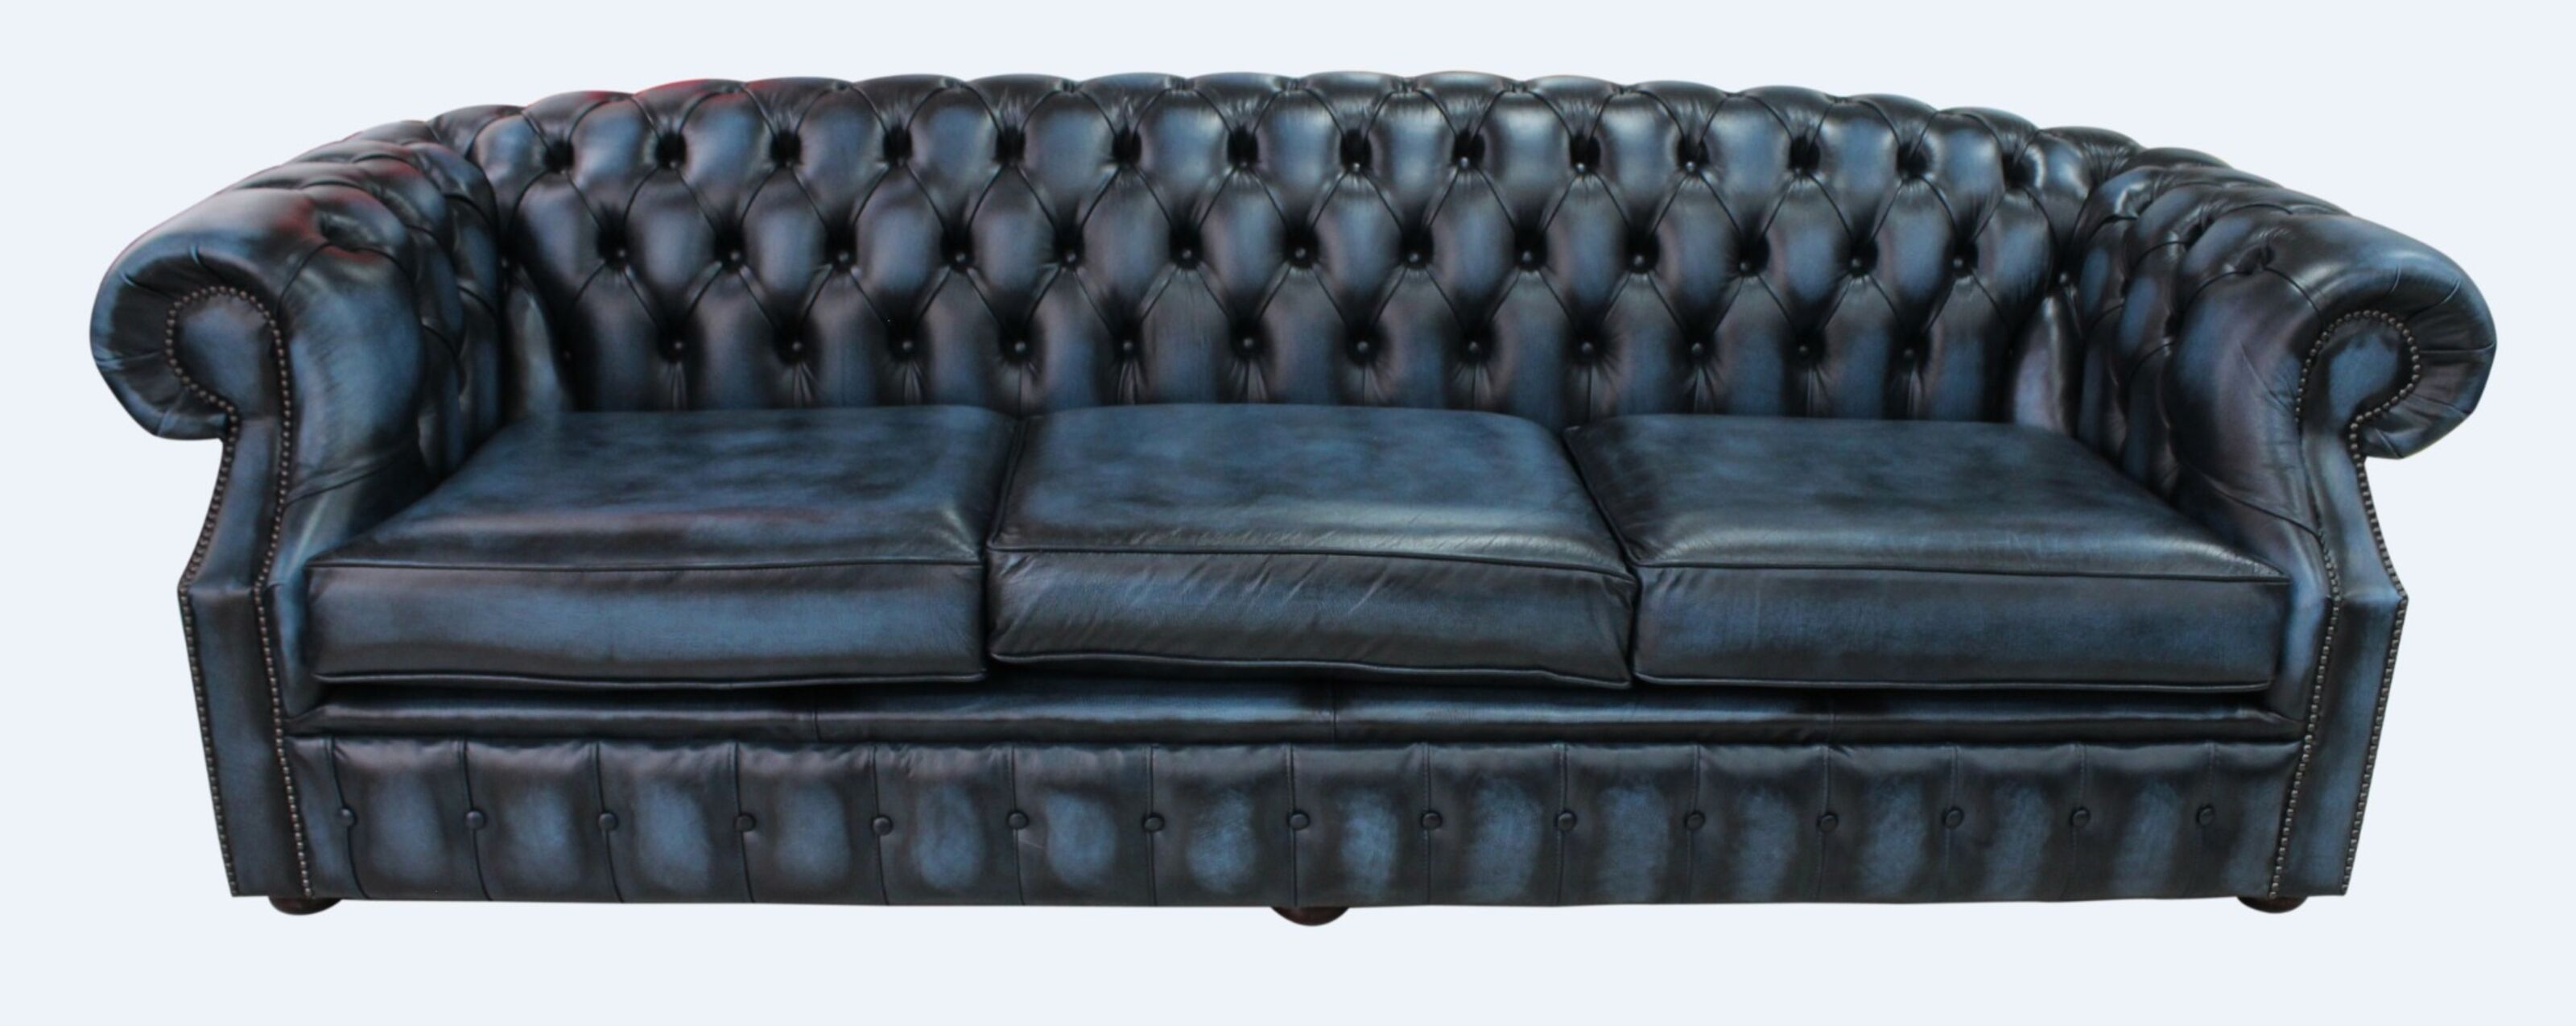 Chesterfield Buckingham 4 Seater Antique Blue Leather Sofa Offer